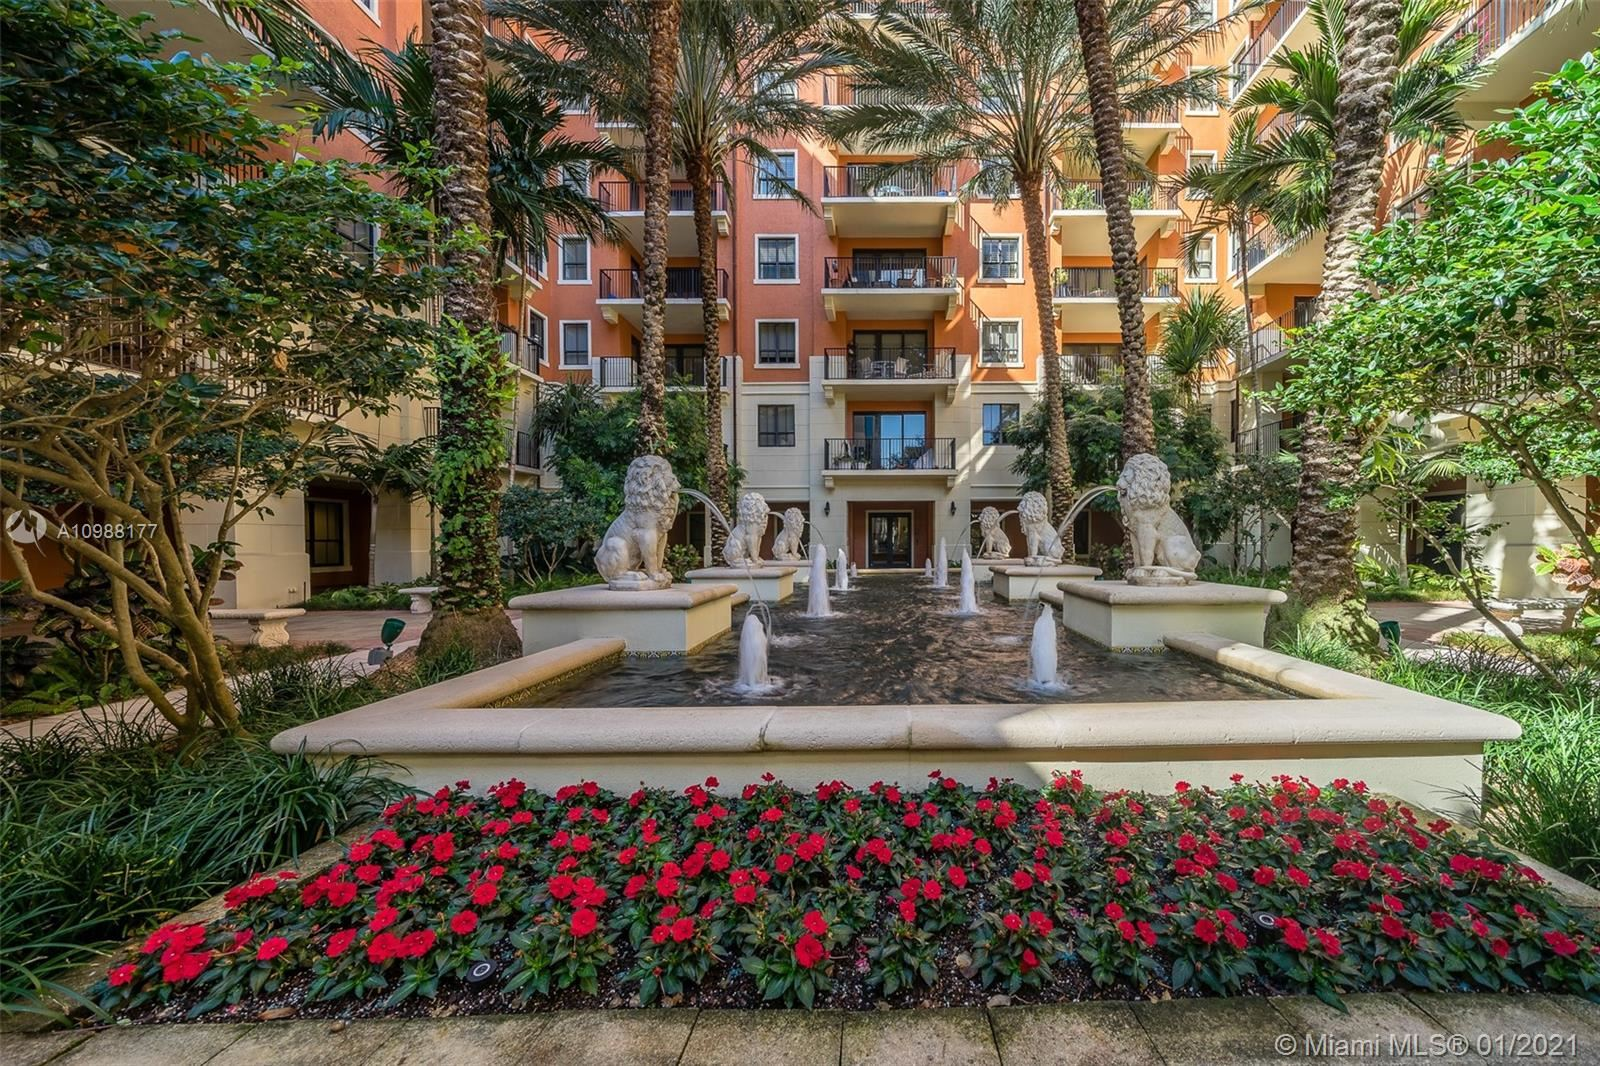 100 Andalusia Ave #401, Coral Gables, FL 33134 - #: A10988177